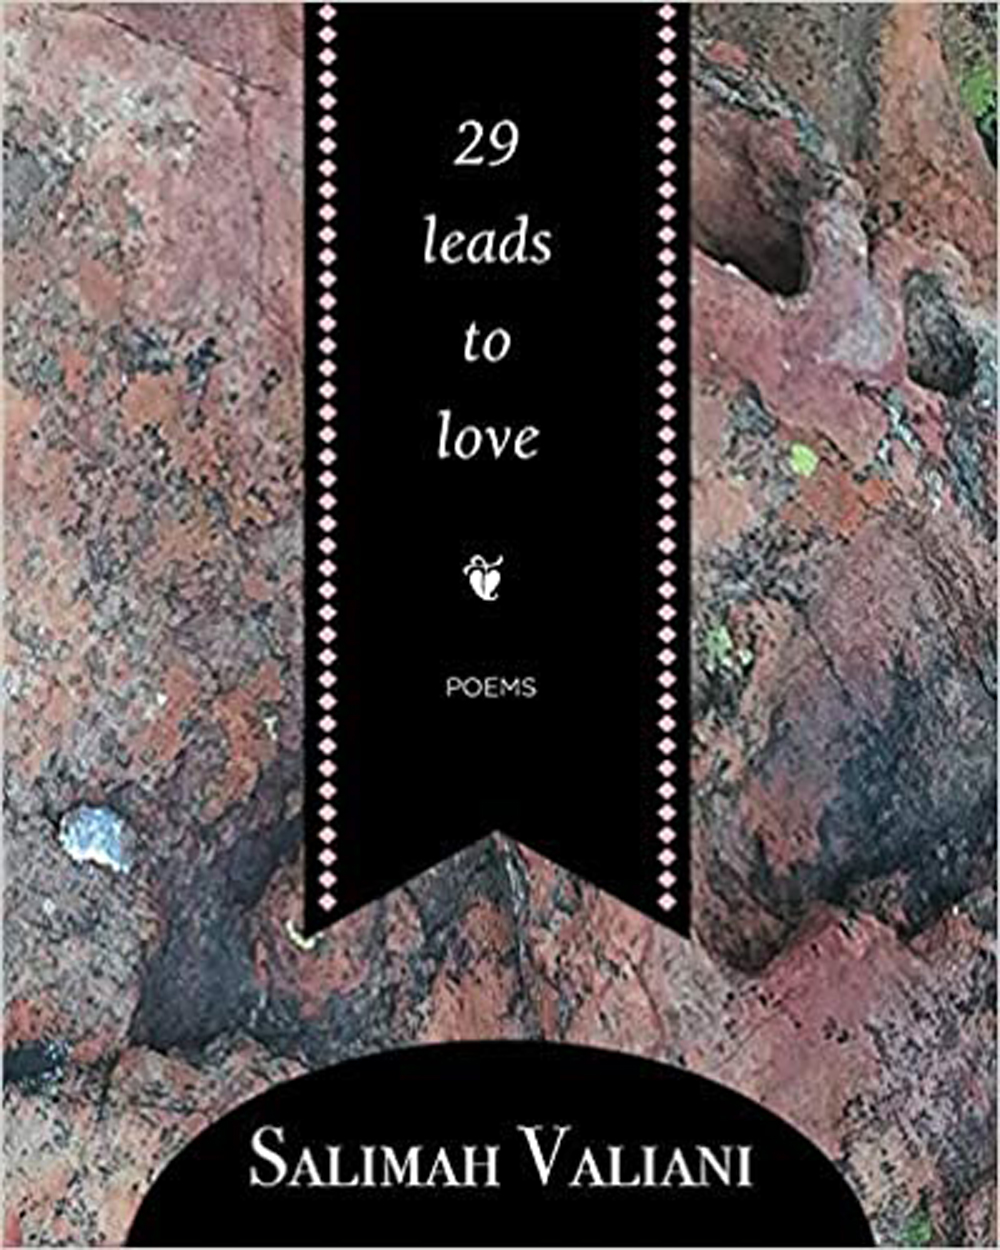 29 leads to love